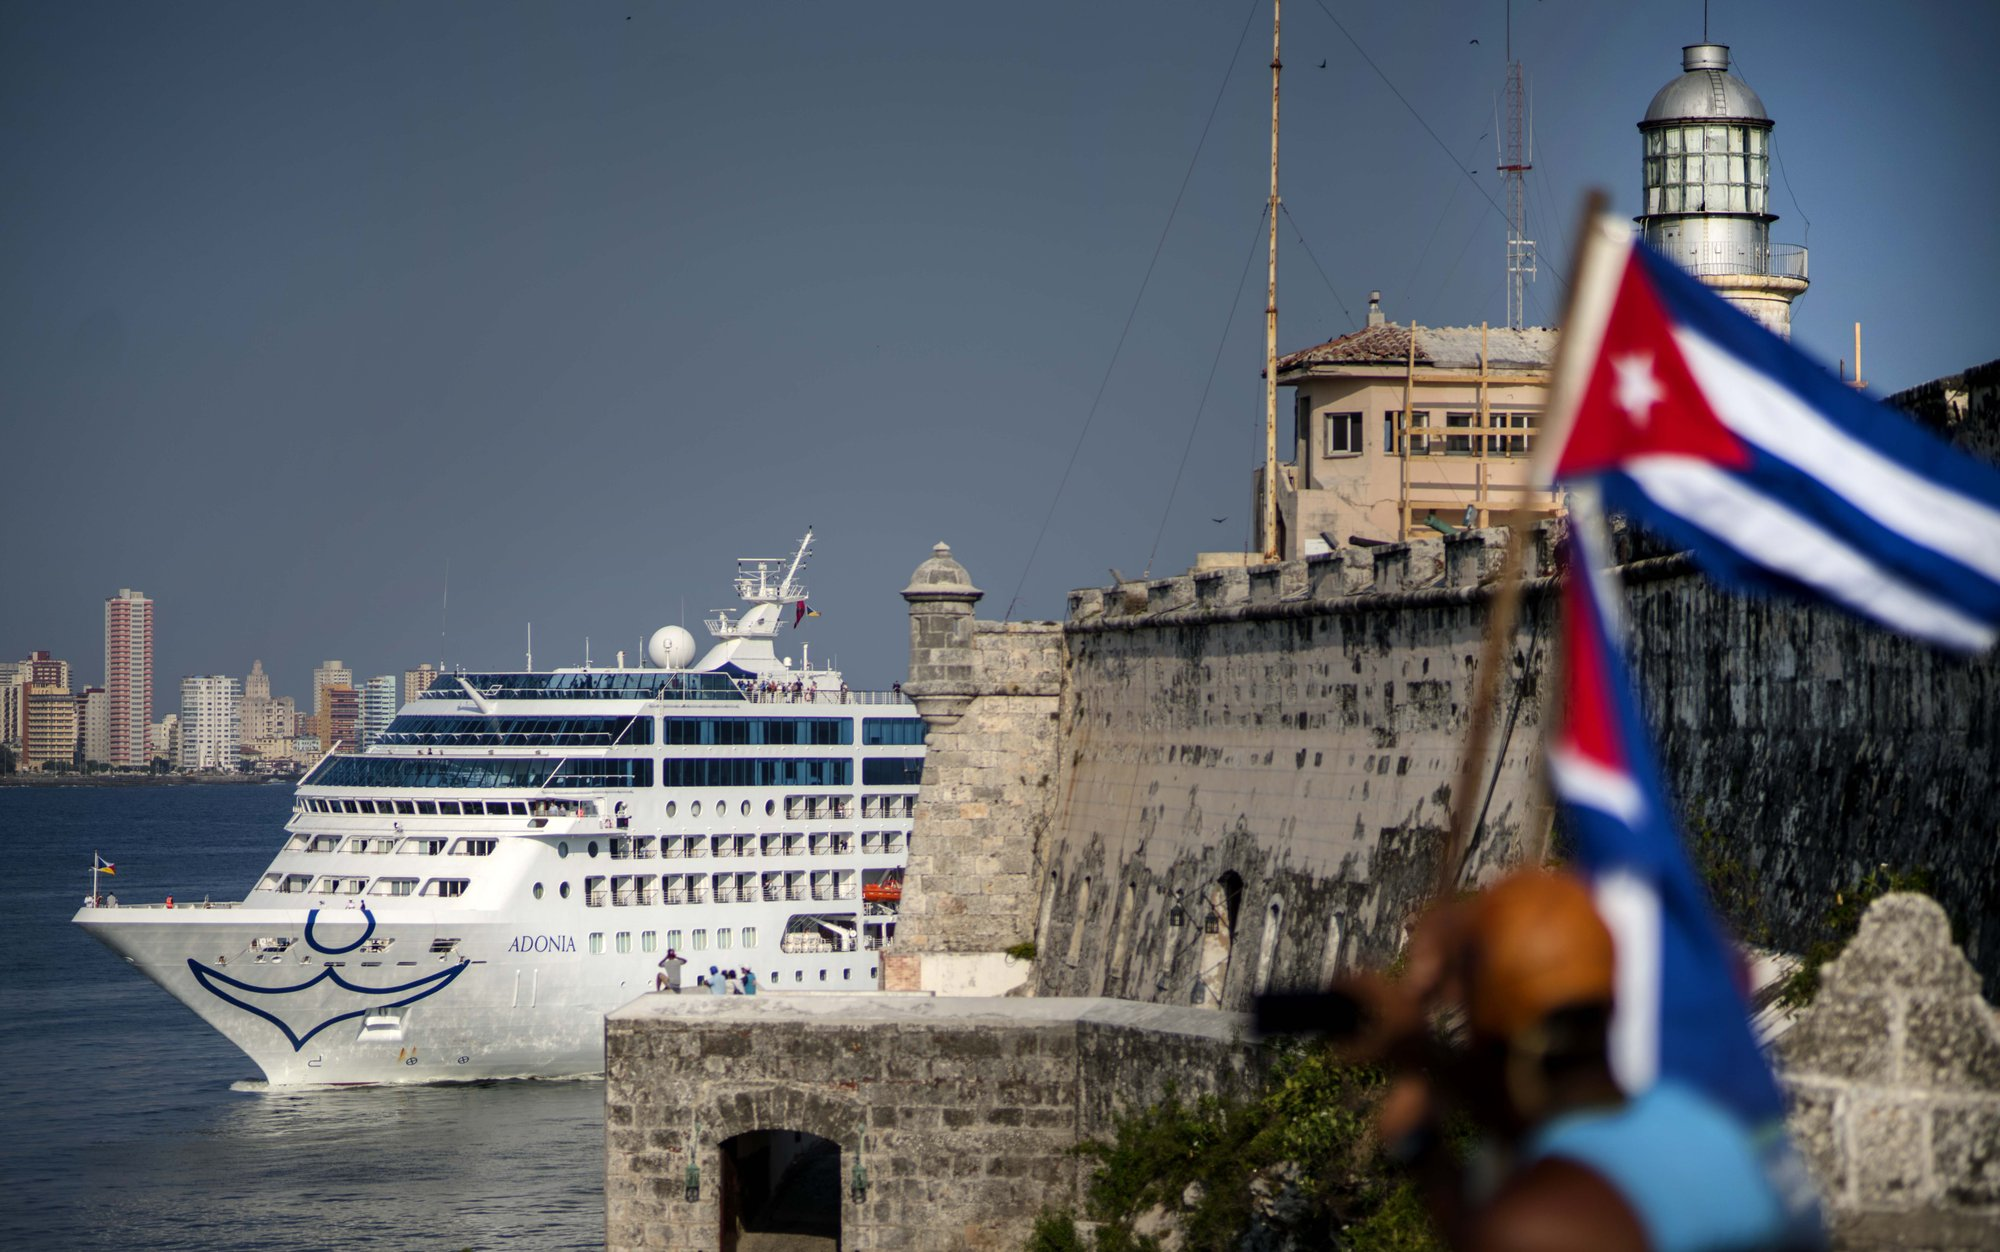 Spanish leader to enhance economic, political ties with trip to Cuba